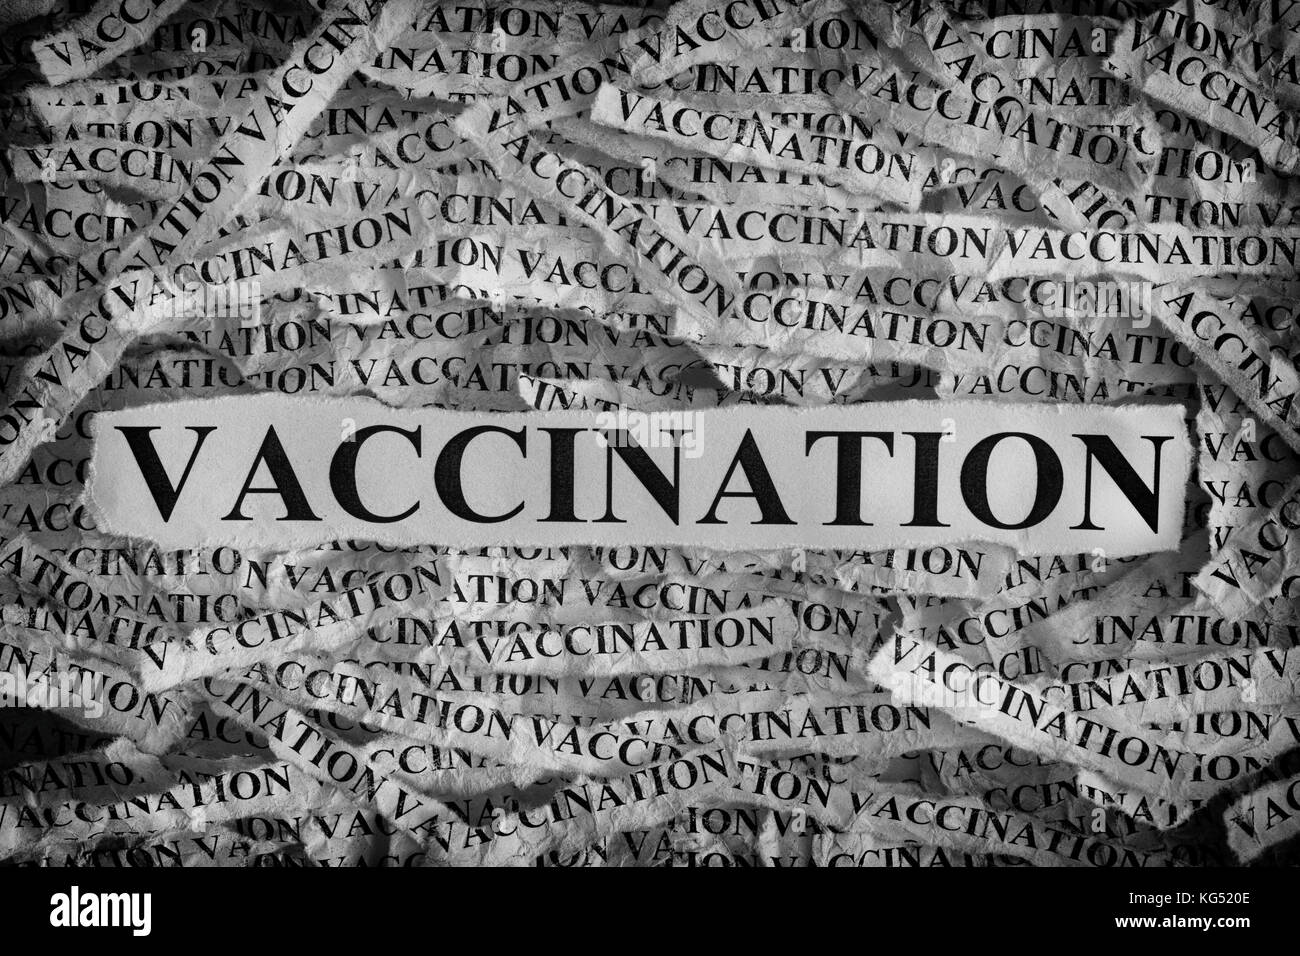 Vaccination. Torn pieces of paper with word Vaccination. Concept Image. Black and White. Closeup. - Stock Image